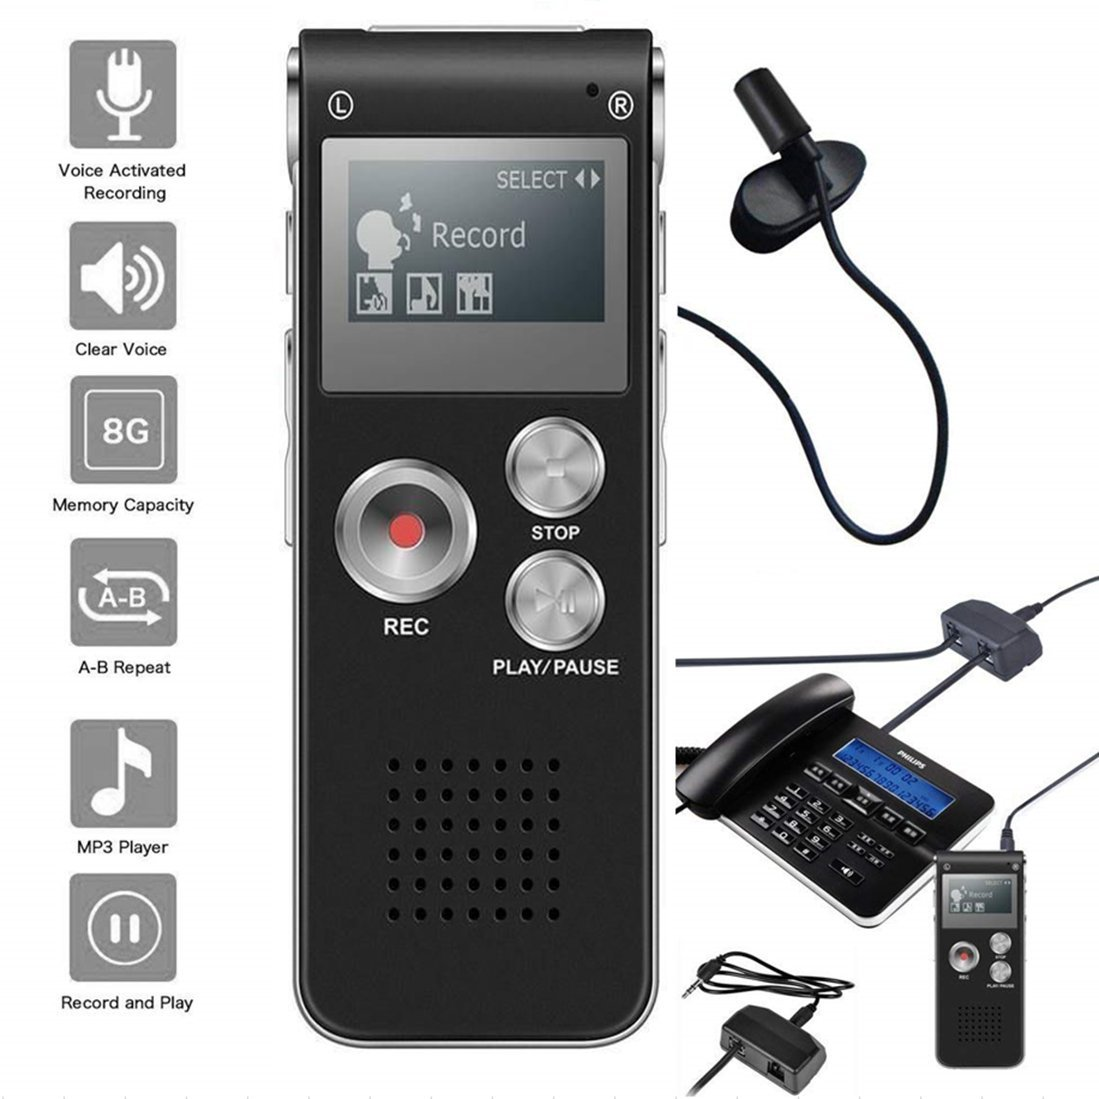 NeeGo Digital Voice Activated Recorder for Lectures 8GB with USB Light Weight Portable MP3 Player with Mic 3.5mm Microphone - Plus Telephone Pickup Cordless Phone Landline Recording Device Recorder